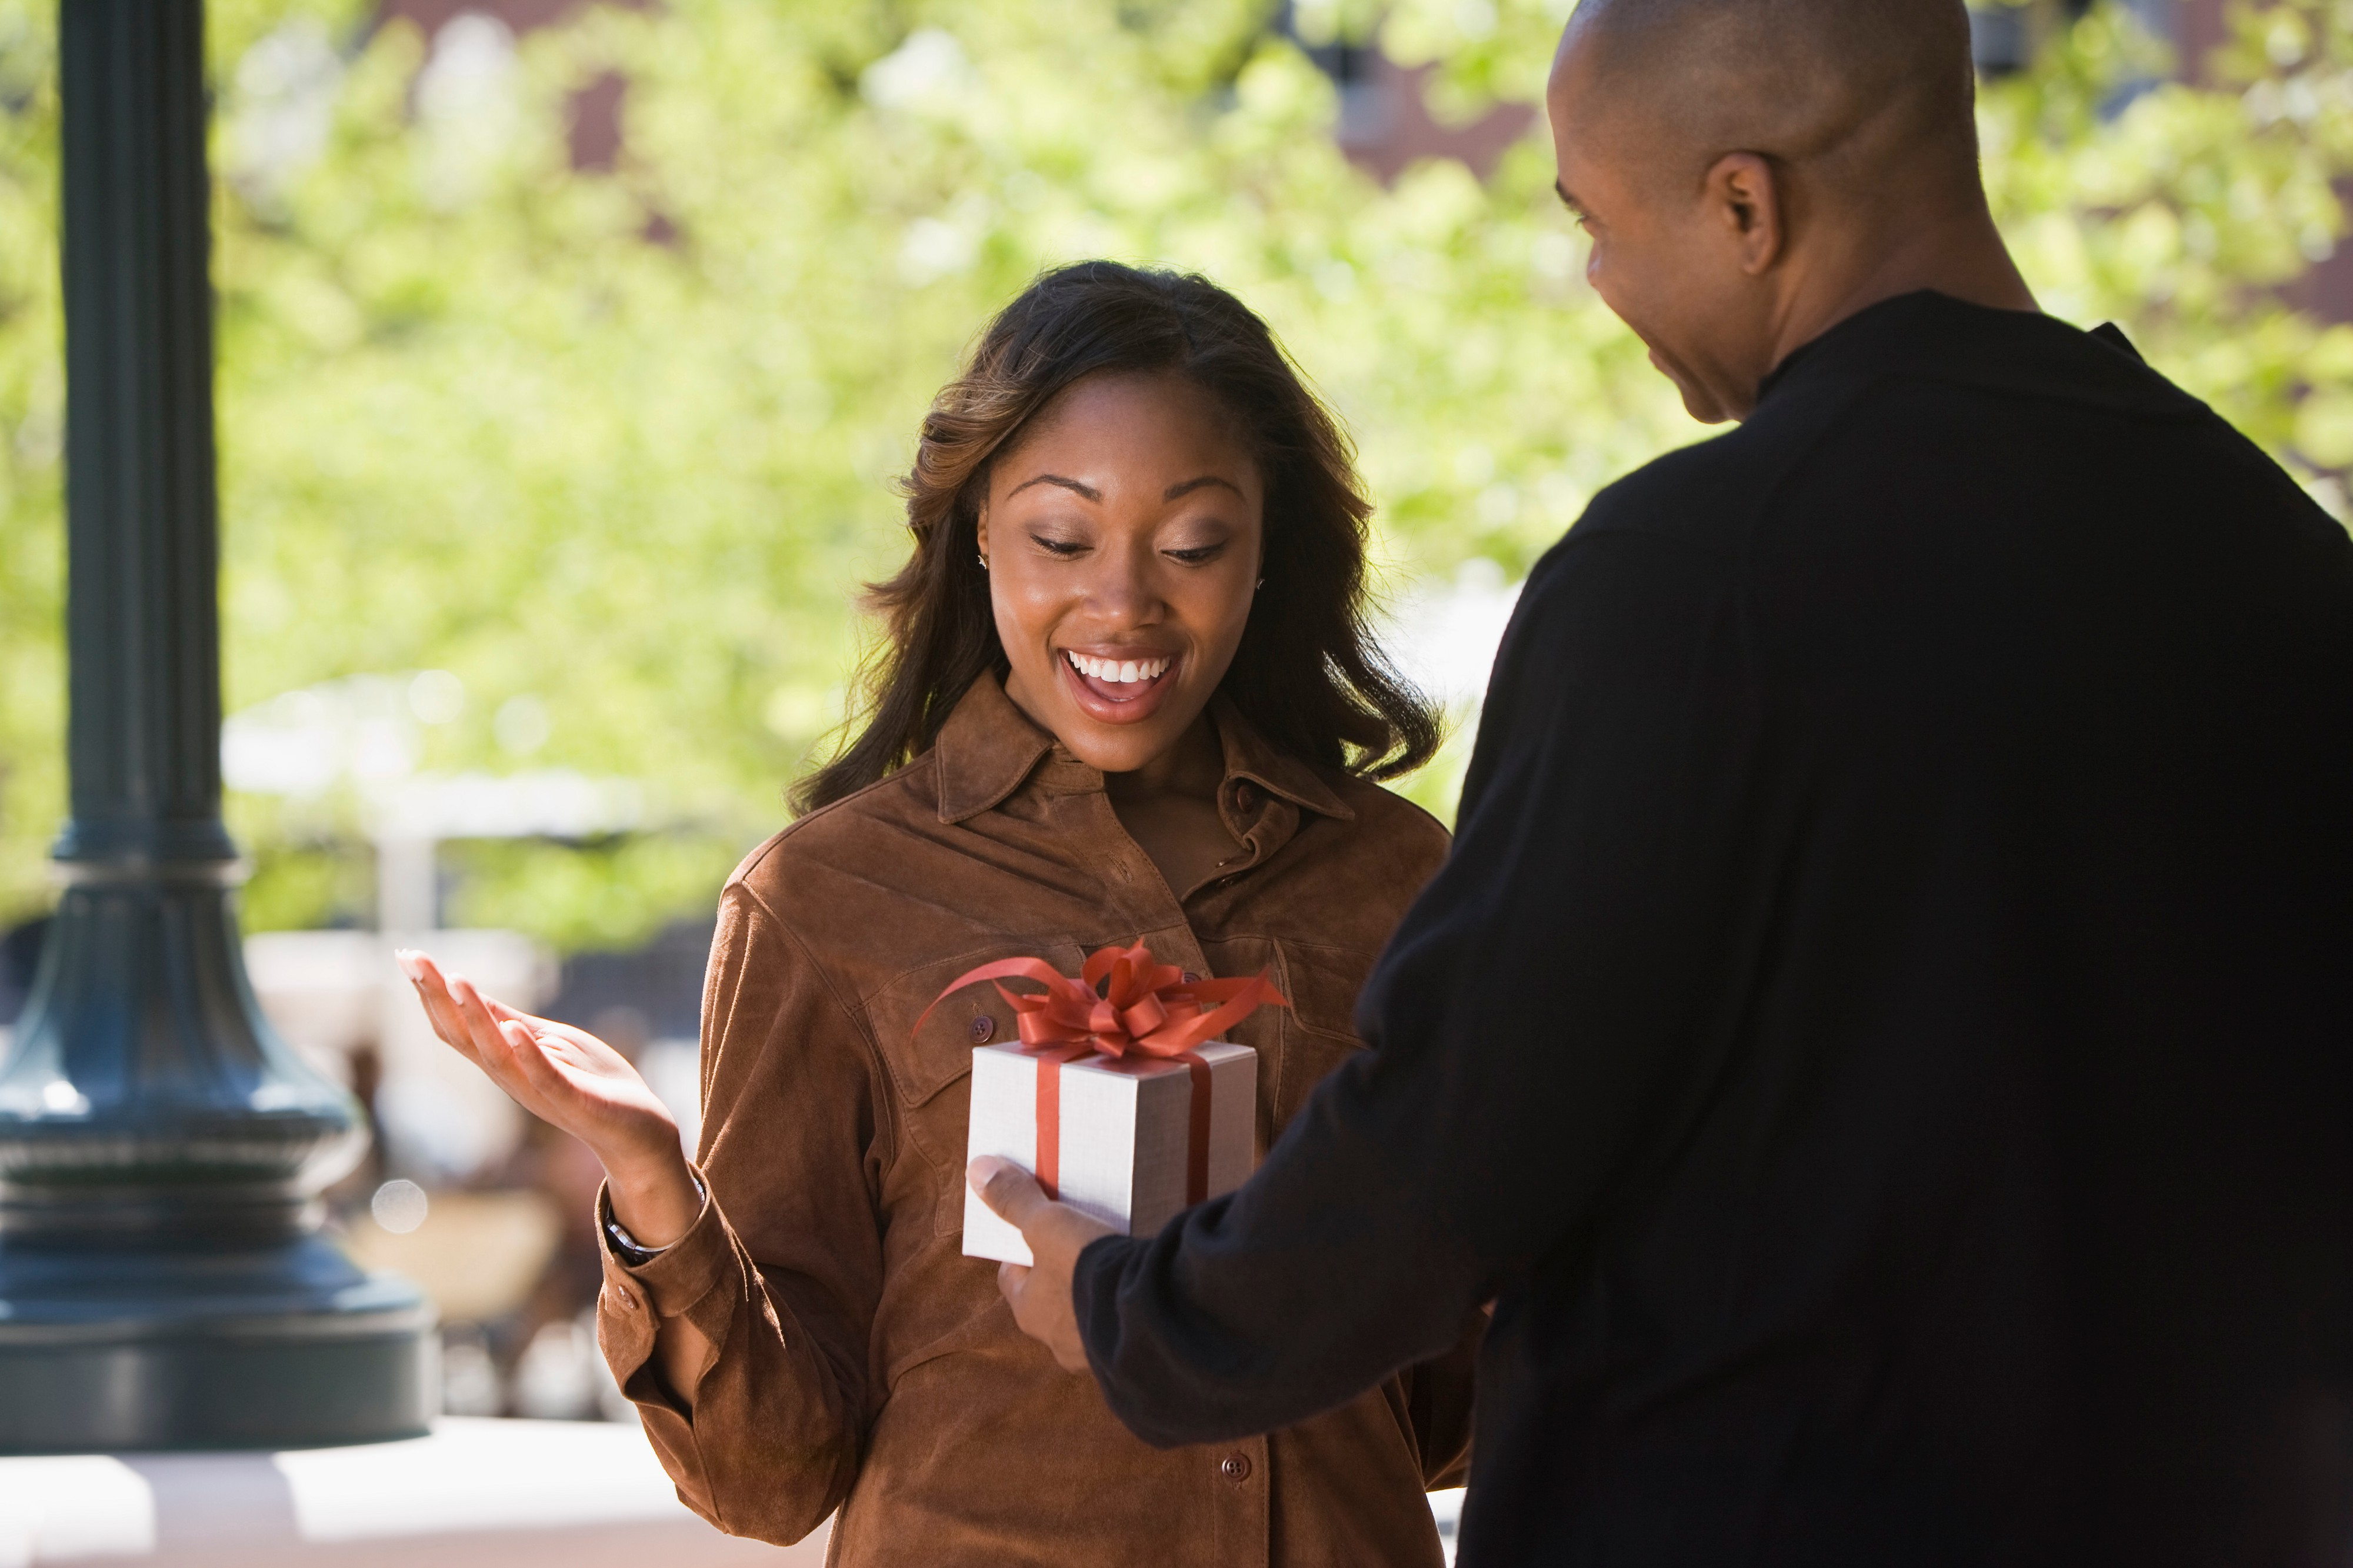 """The Negative Stigma Behind Having """"Receiving Gifts"""" As Your Love ..."""